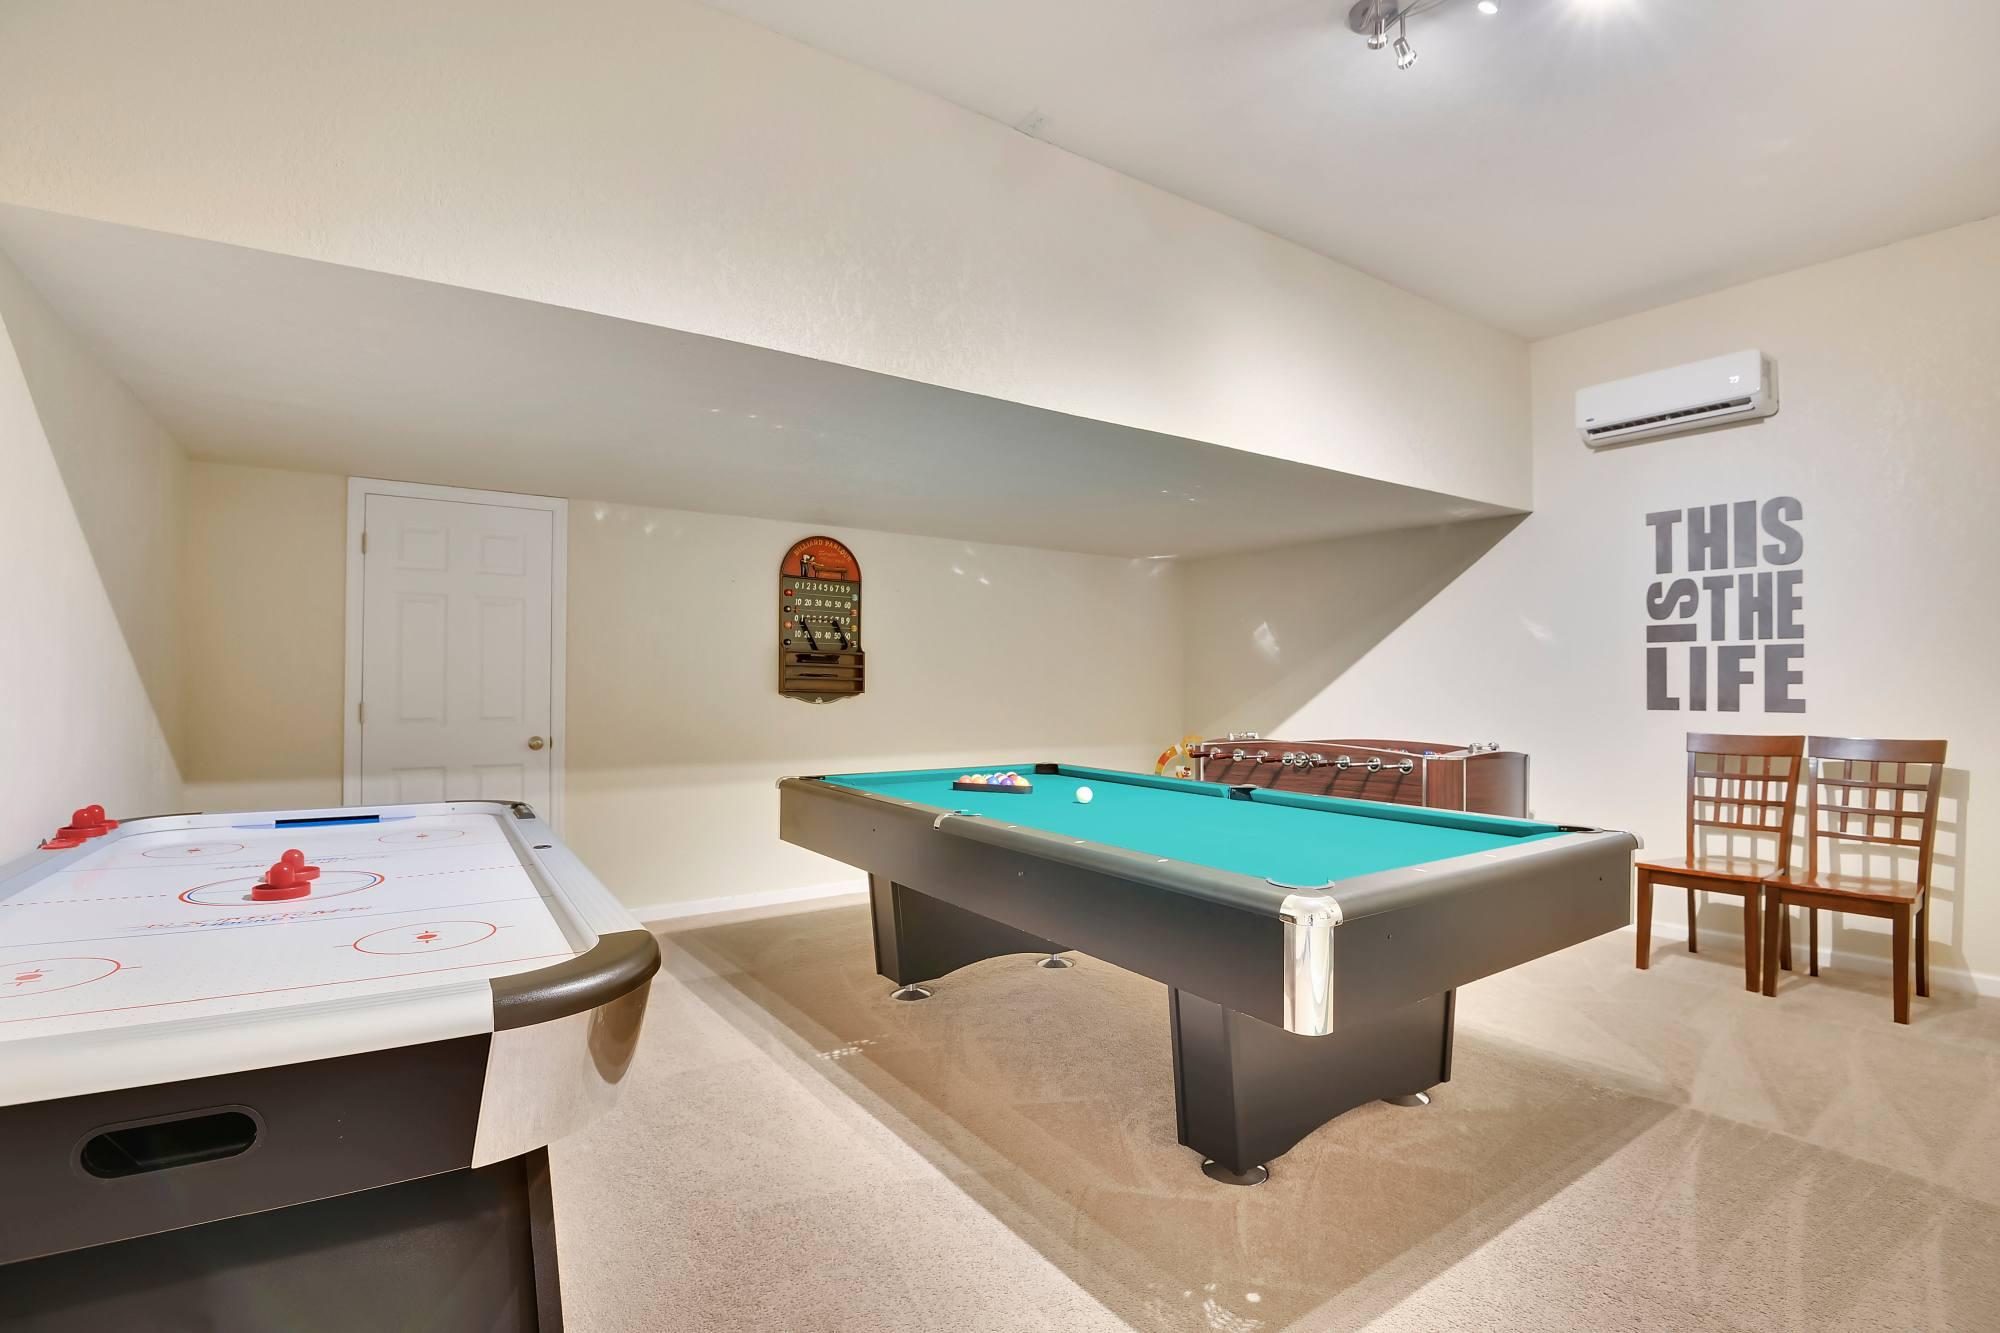 Finished game room pool table/air hockey/foosball